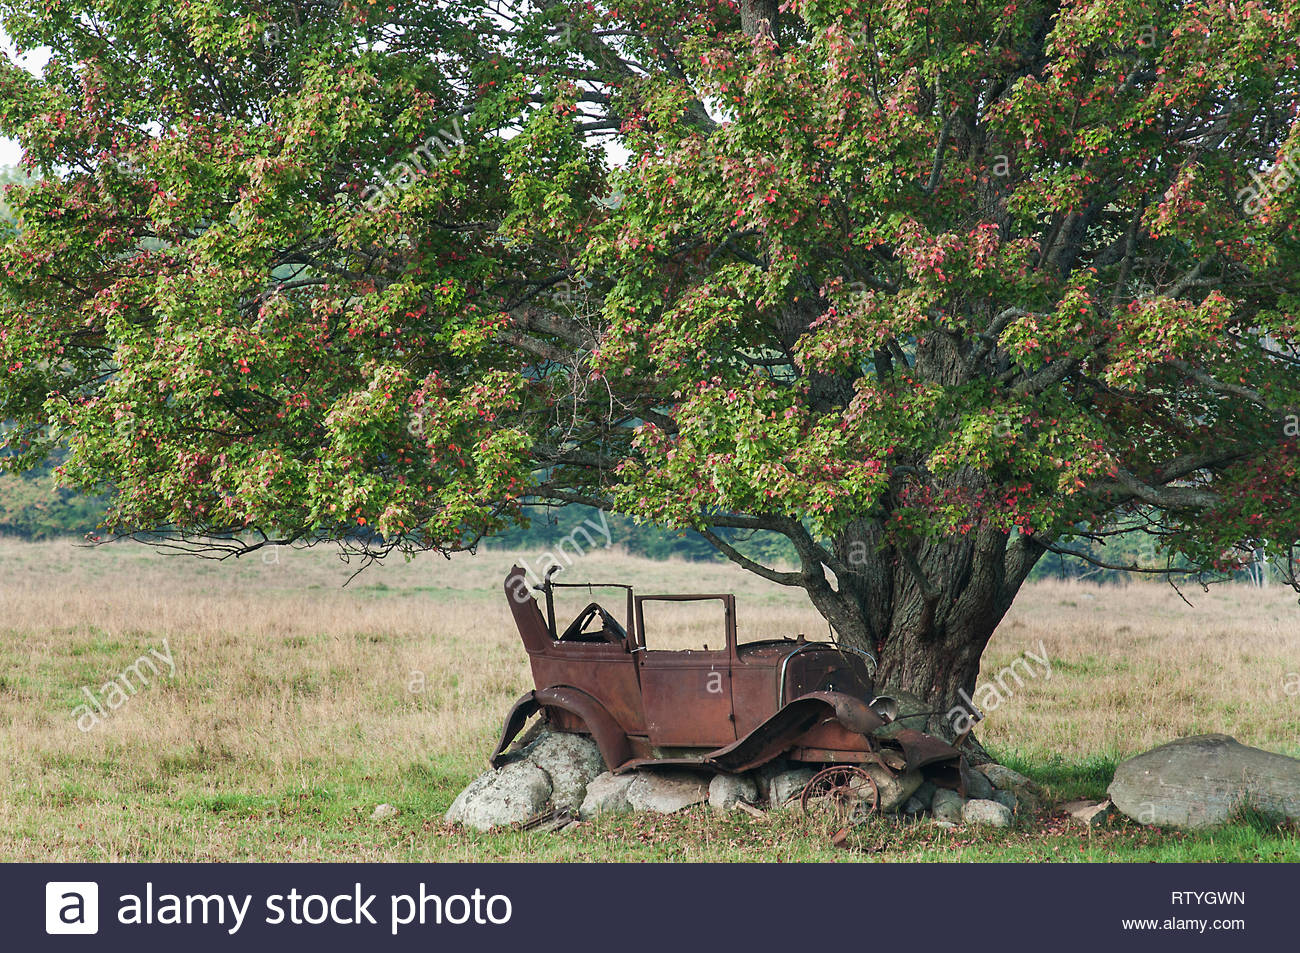 Abandoned car rusting away under large Maple tree Maynooth Ontario Canada - Stock Image